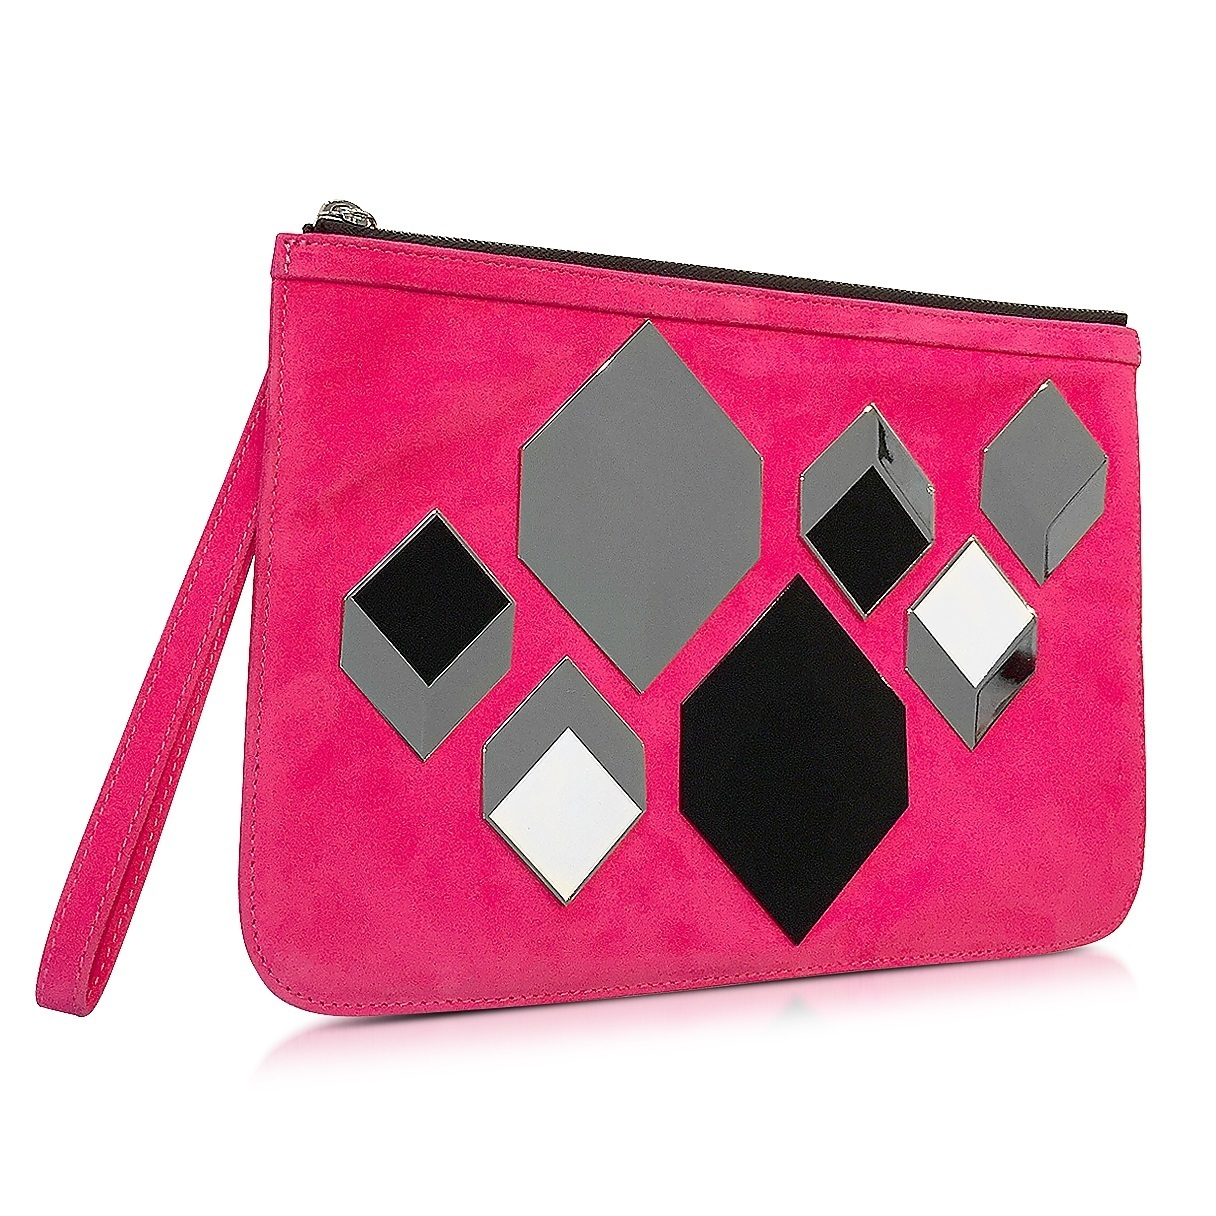 ★Pierre Hardy★ Cube Pink Suede Pouch ポーチ 関税込